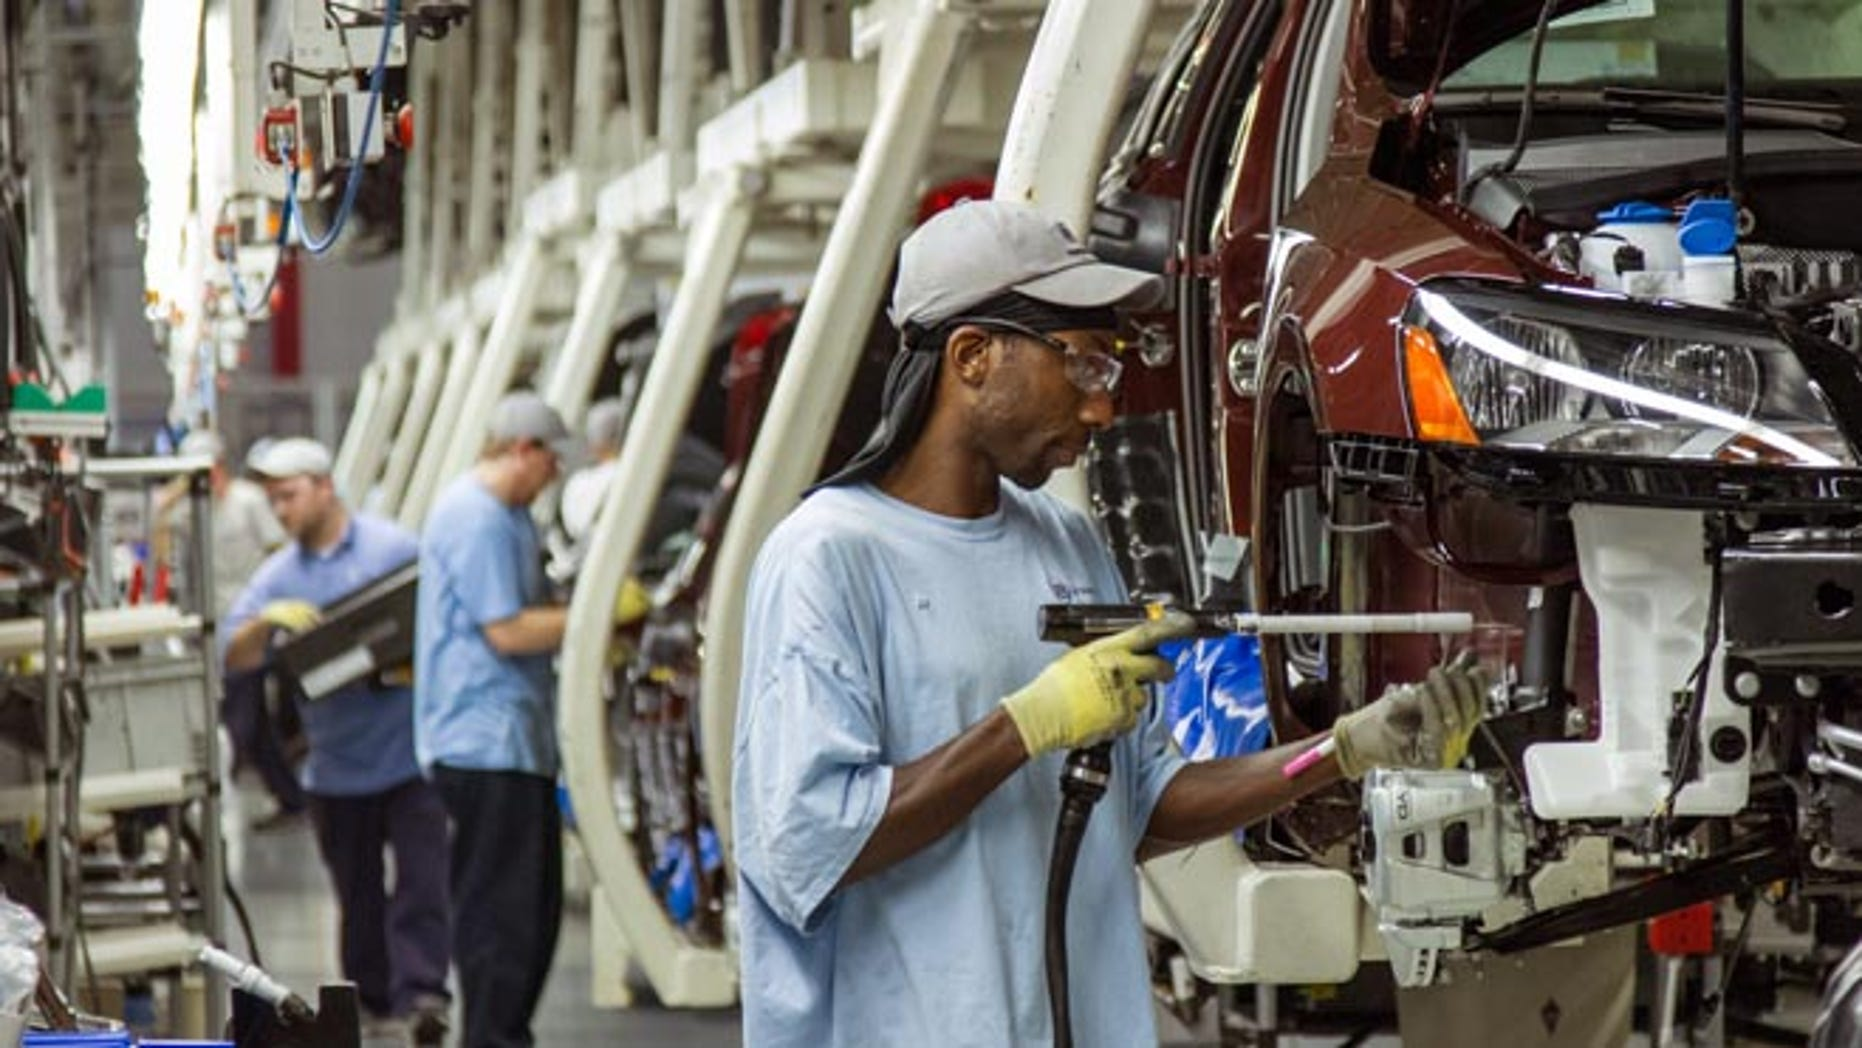 In this June 12, 2013 file photo, workers assemble Volkswagen Passat sedans at the German automaker's plant in Chattanooga, Tenn.